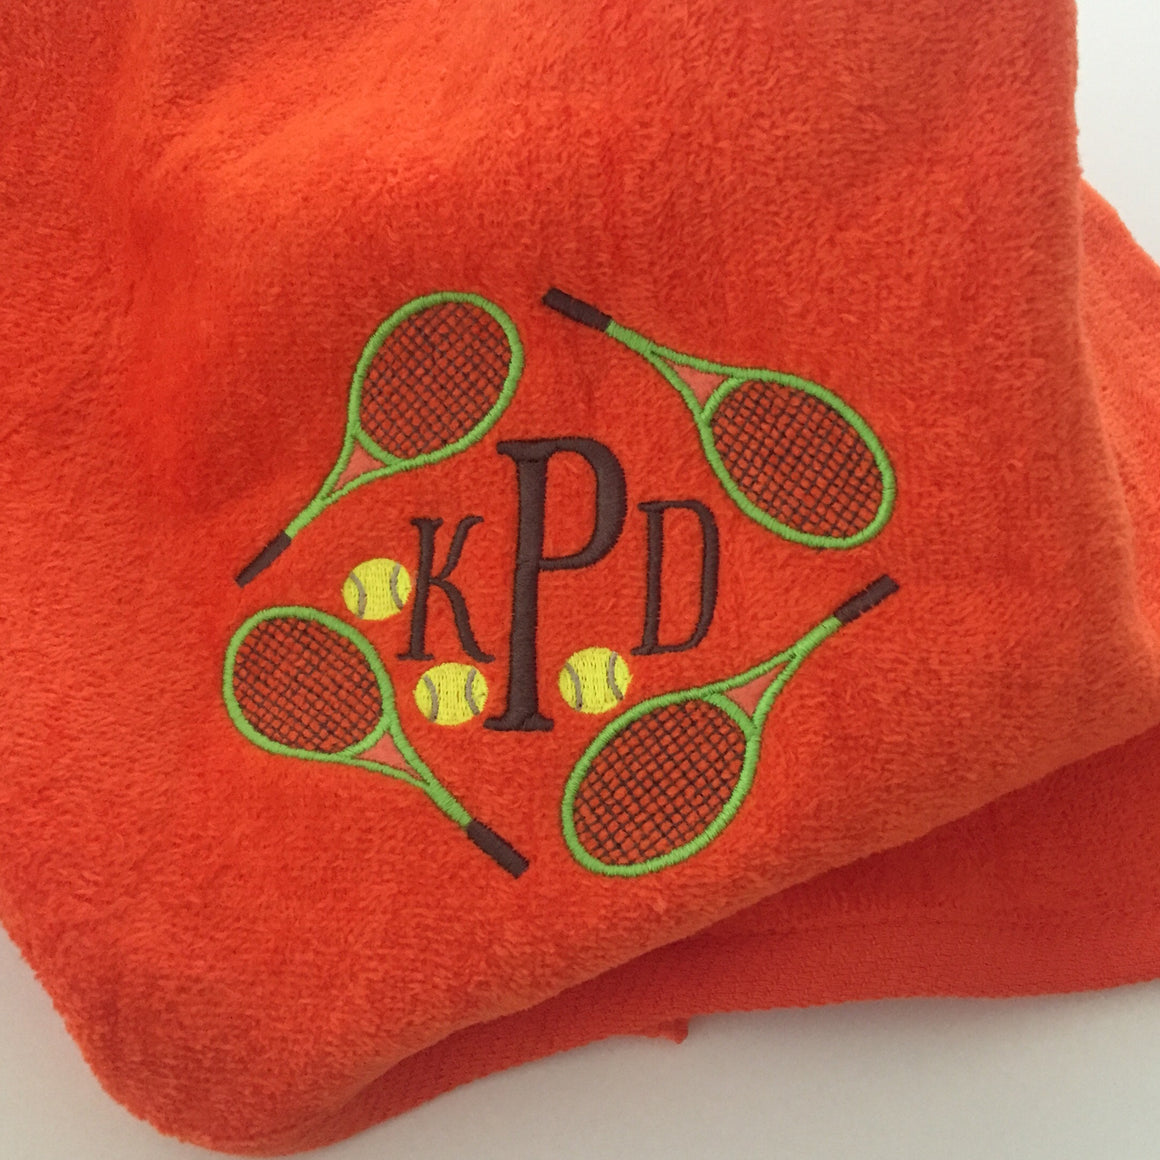 Personalized Tennis Captain Banquet Gift - Applique Flower Ball Ladies Sports Towel